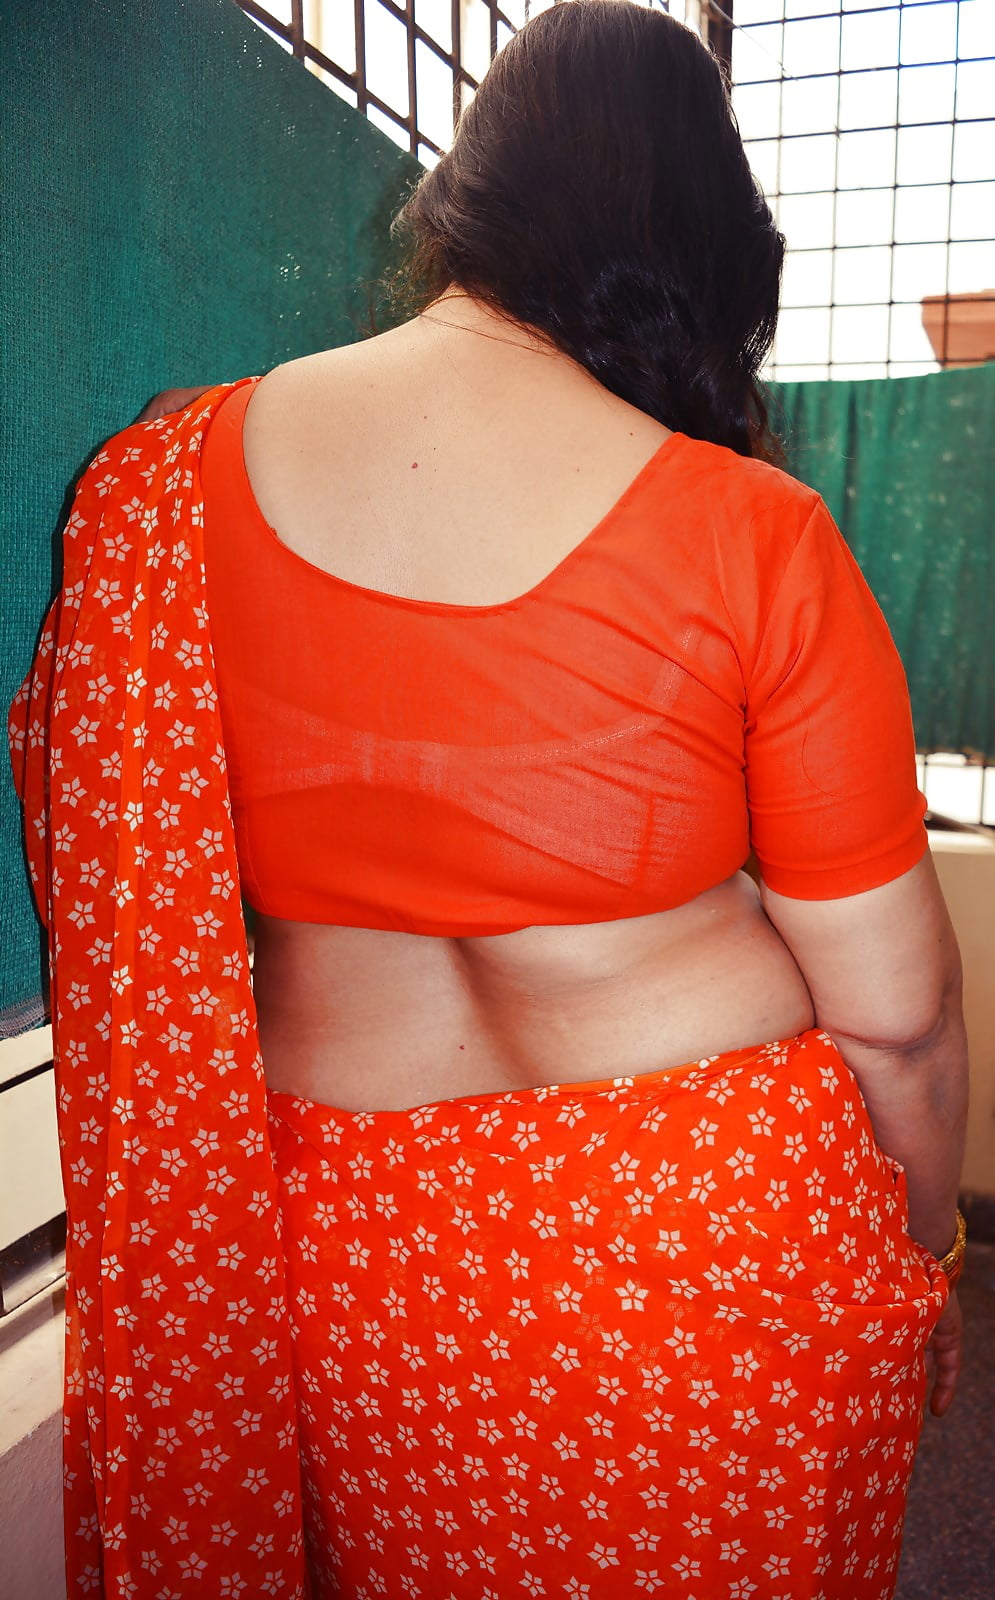 Desi indian bhabhi removing saree nice